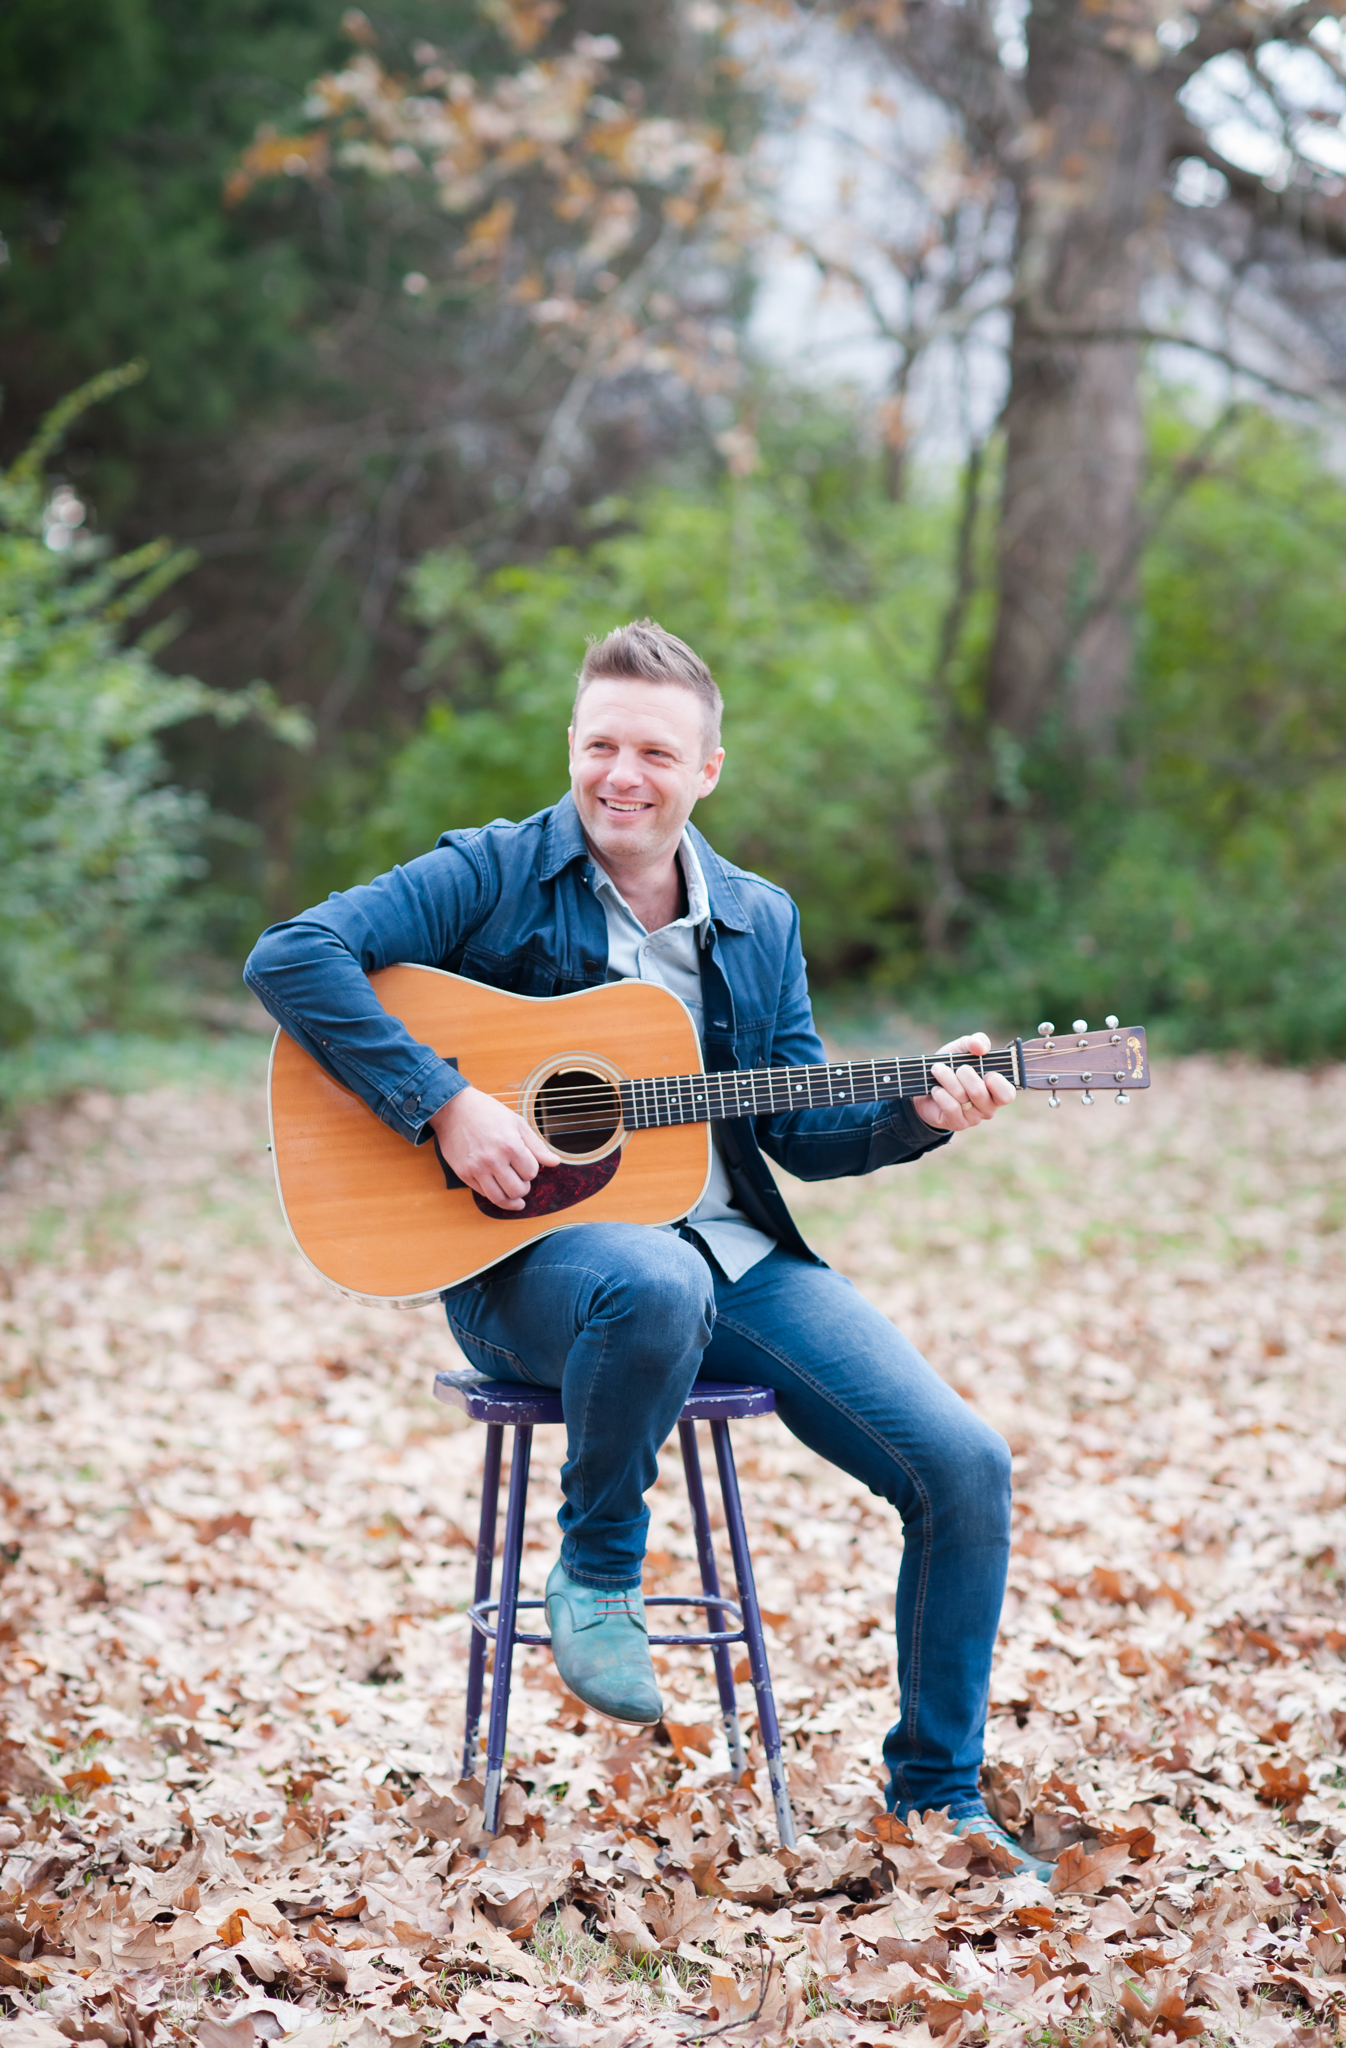 Shane Key, High Point musician sits on a stool holding a guitar.